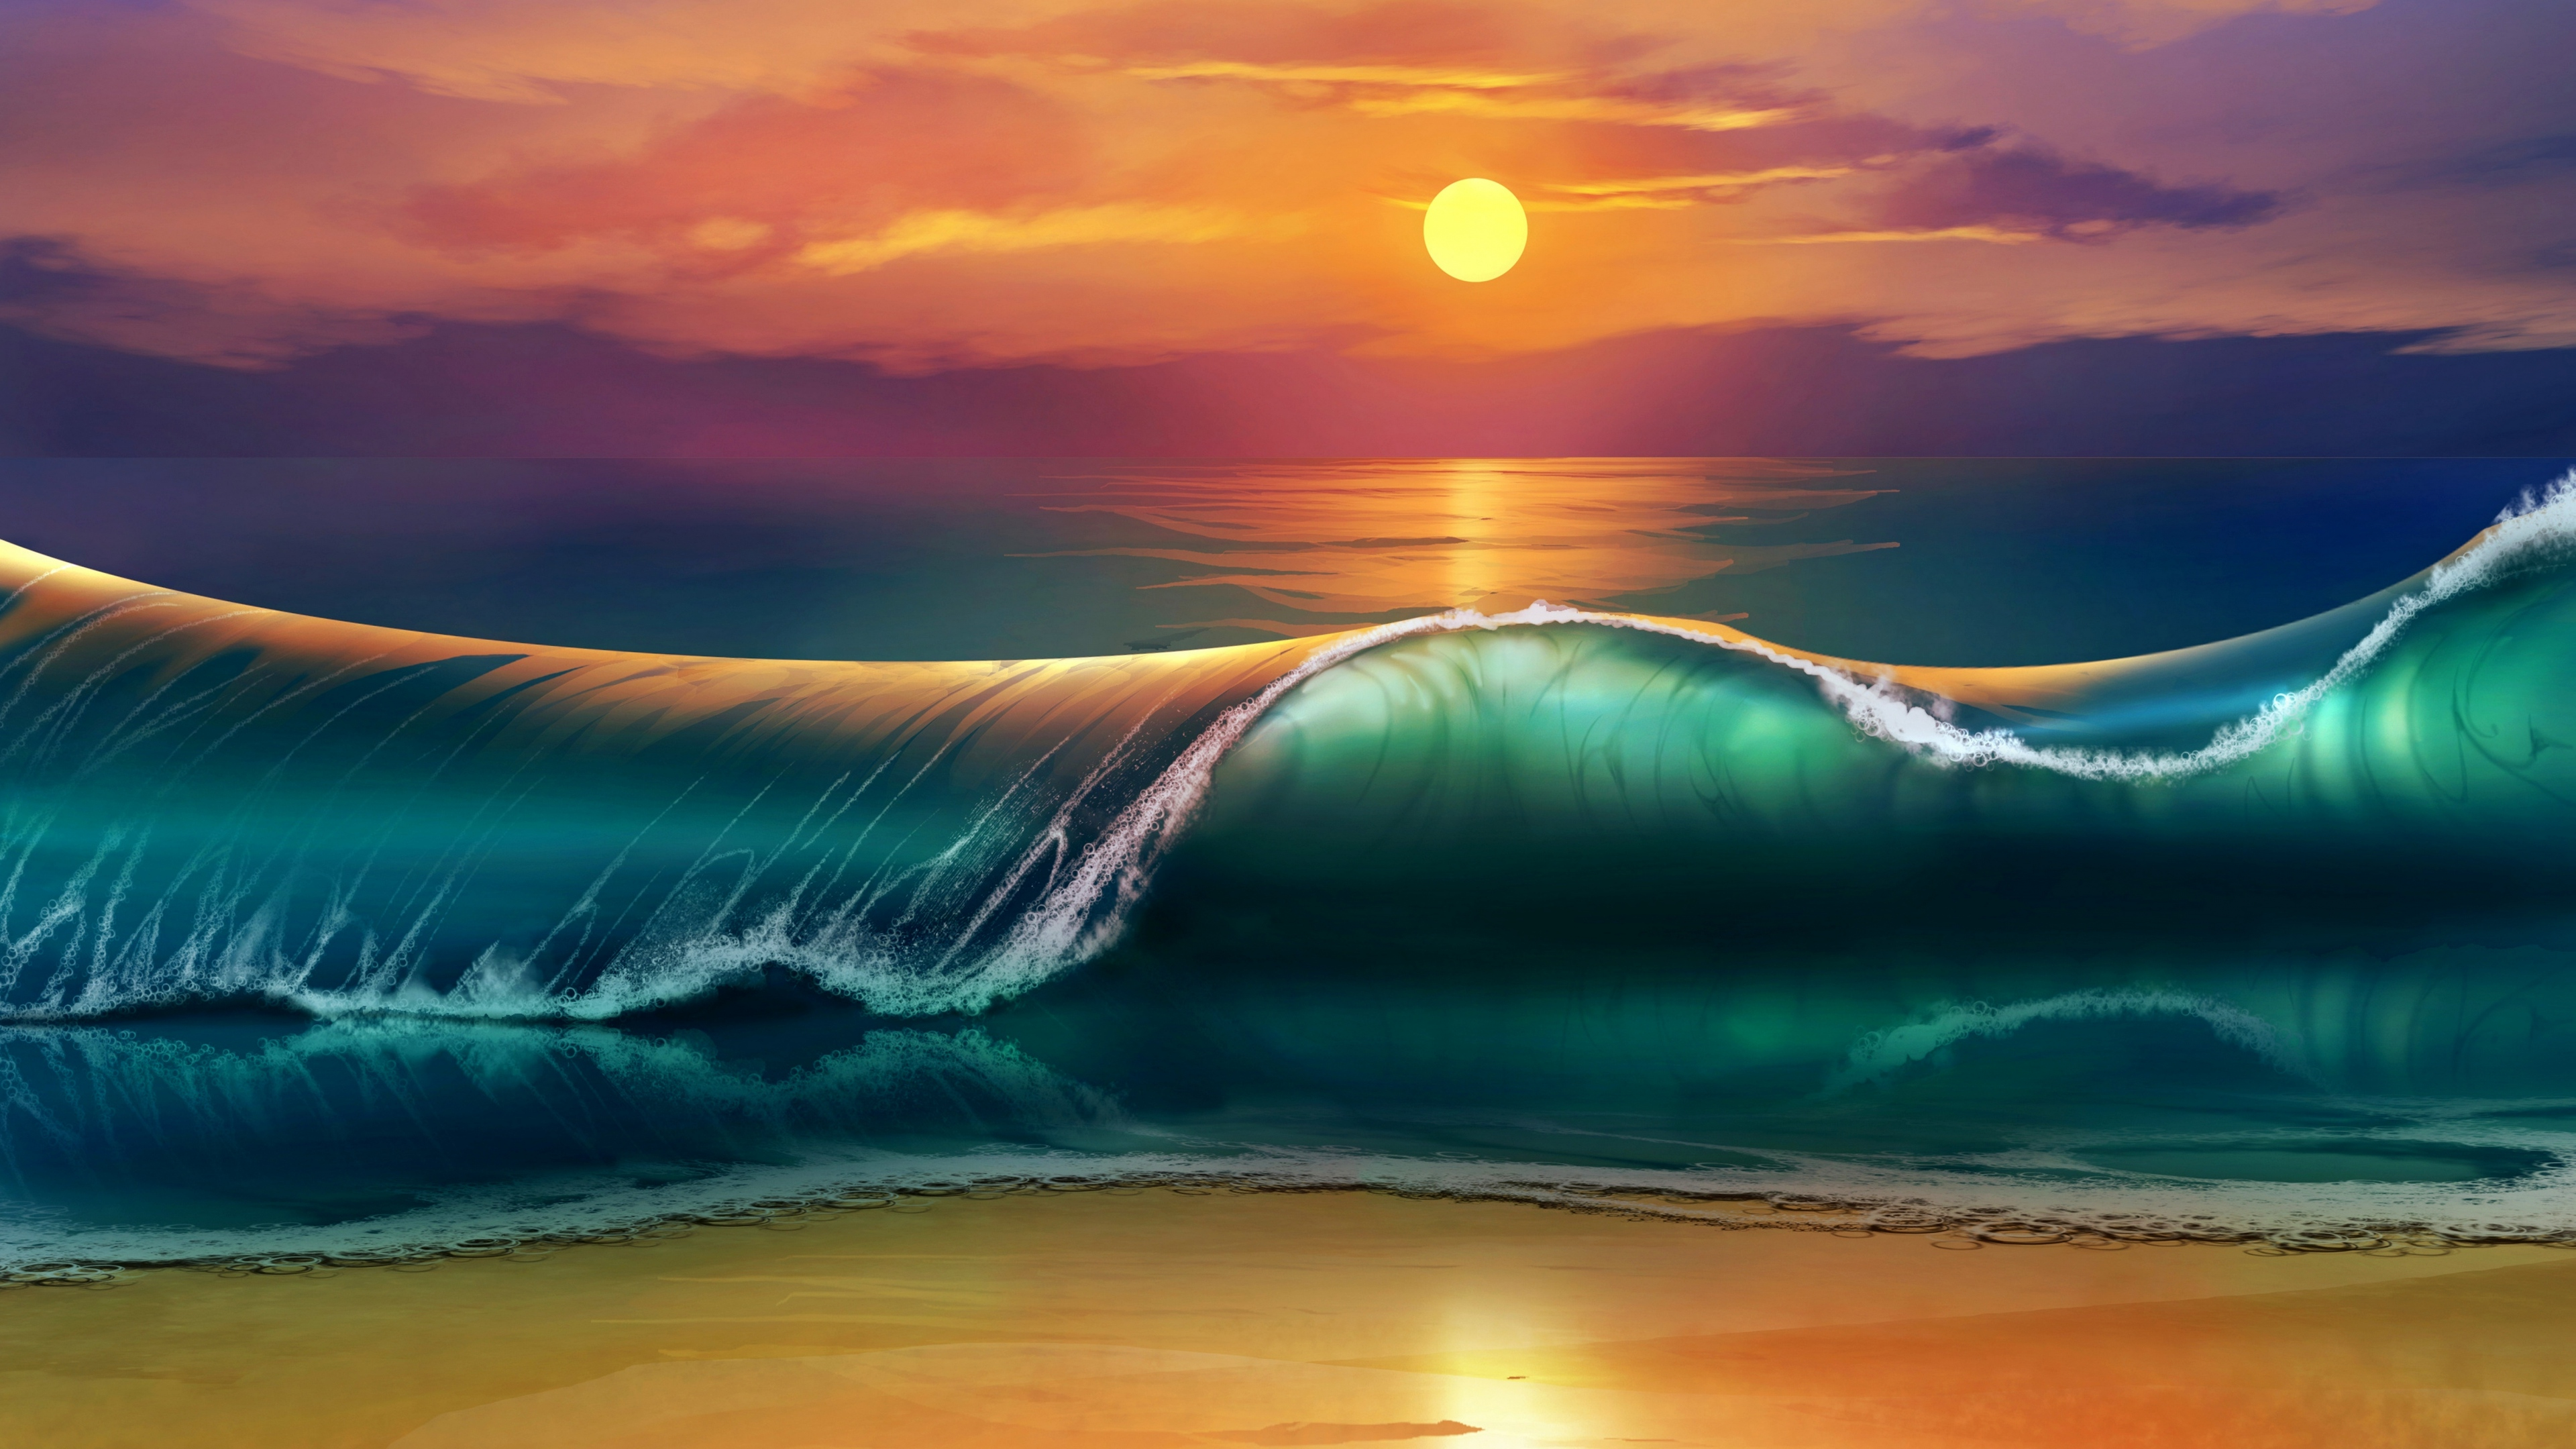 The sunset art hd artist 4k wallpapers images backgrounds the sunset art voltagebd Gallery